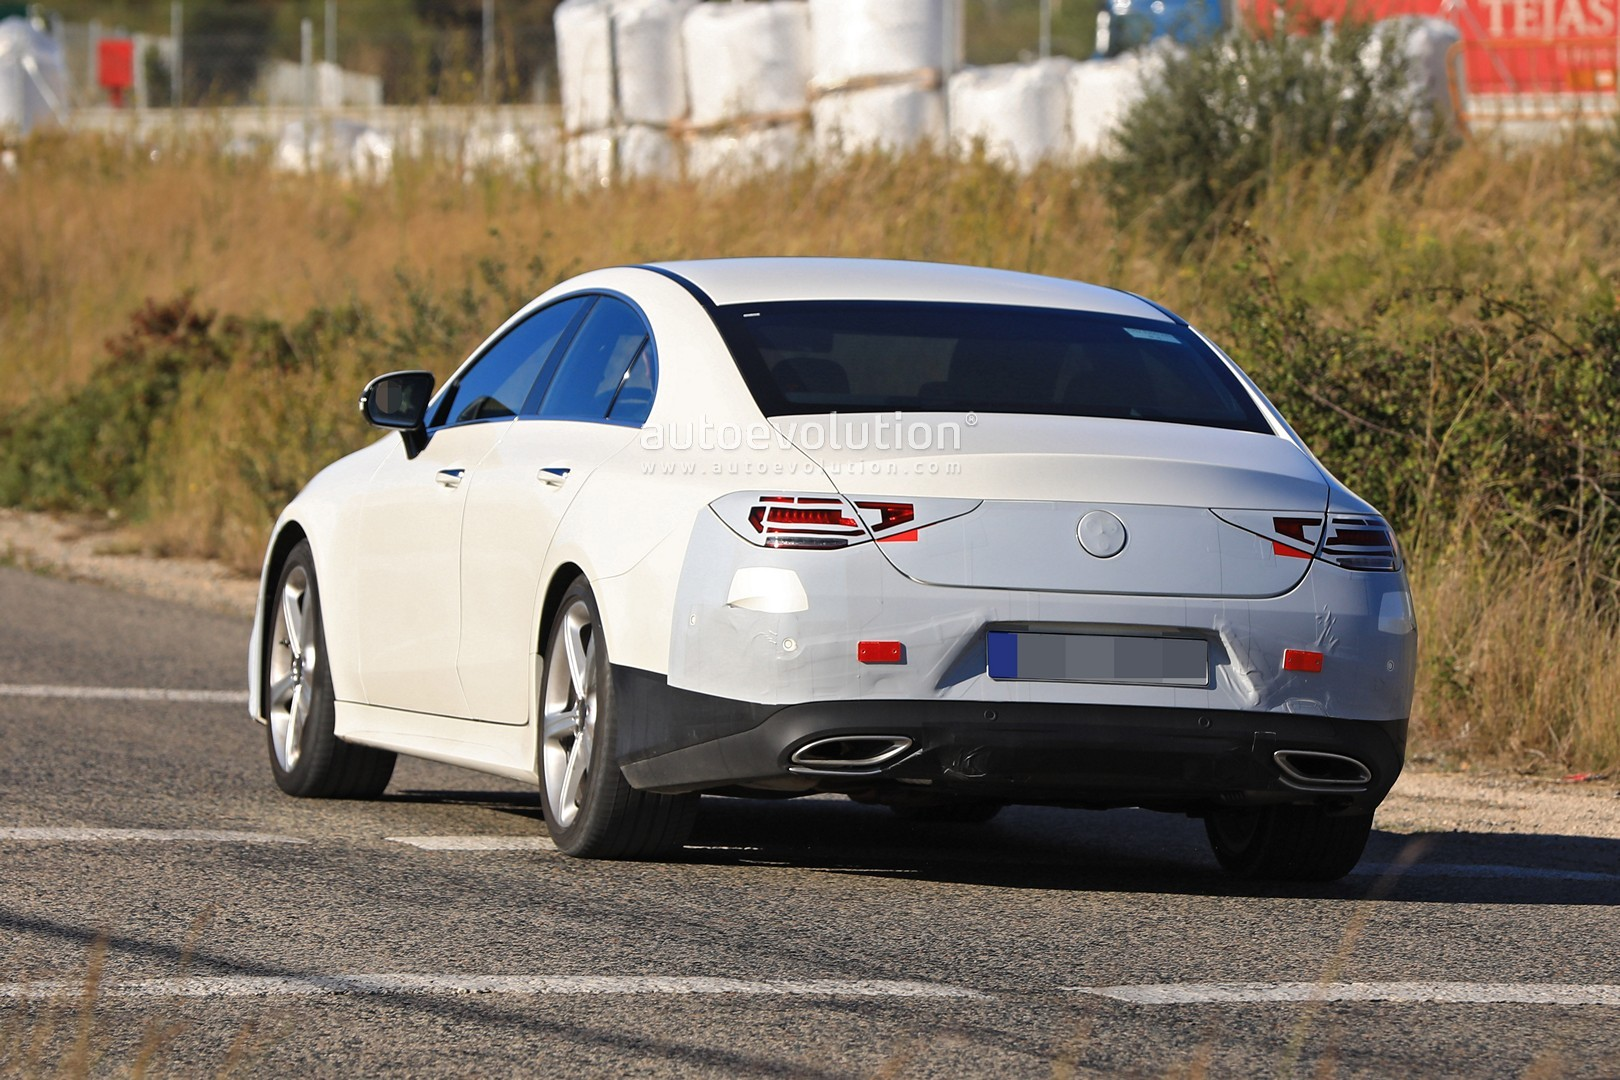 all-new-mercedes-cls-class-has-almost-no-camo-looks-pointy_17